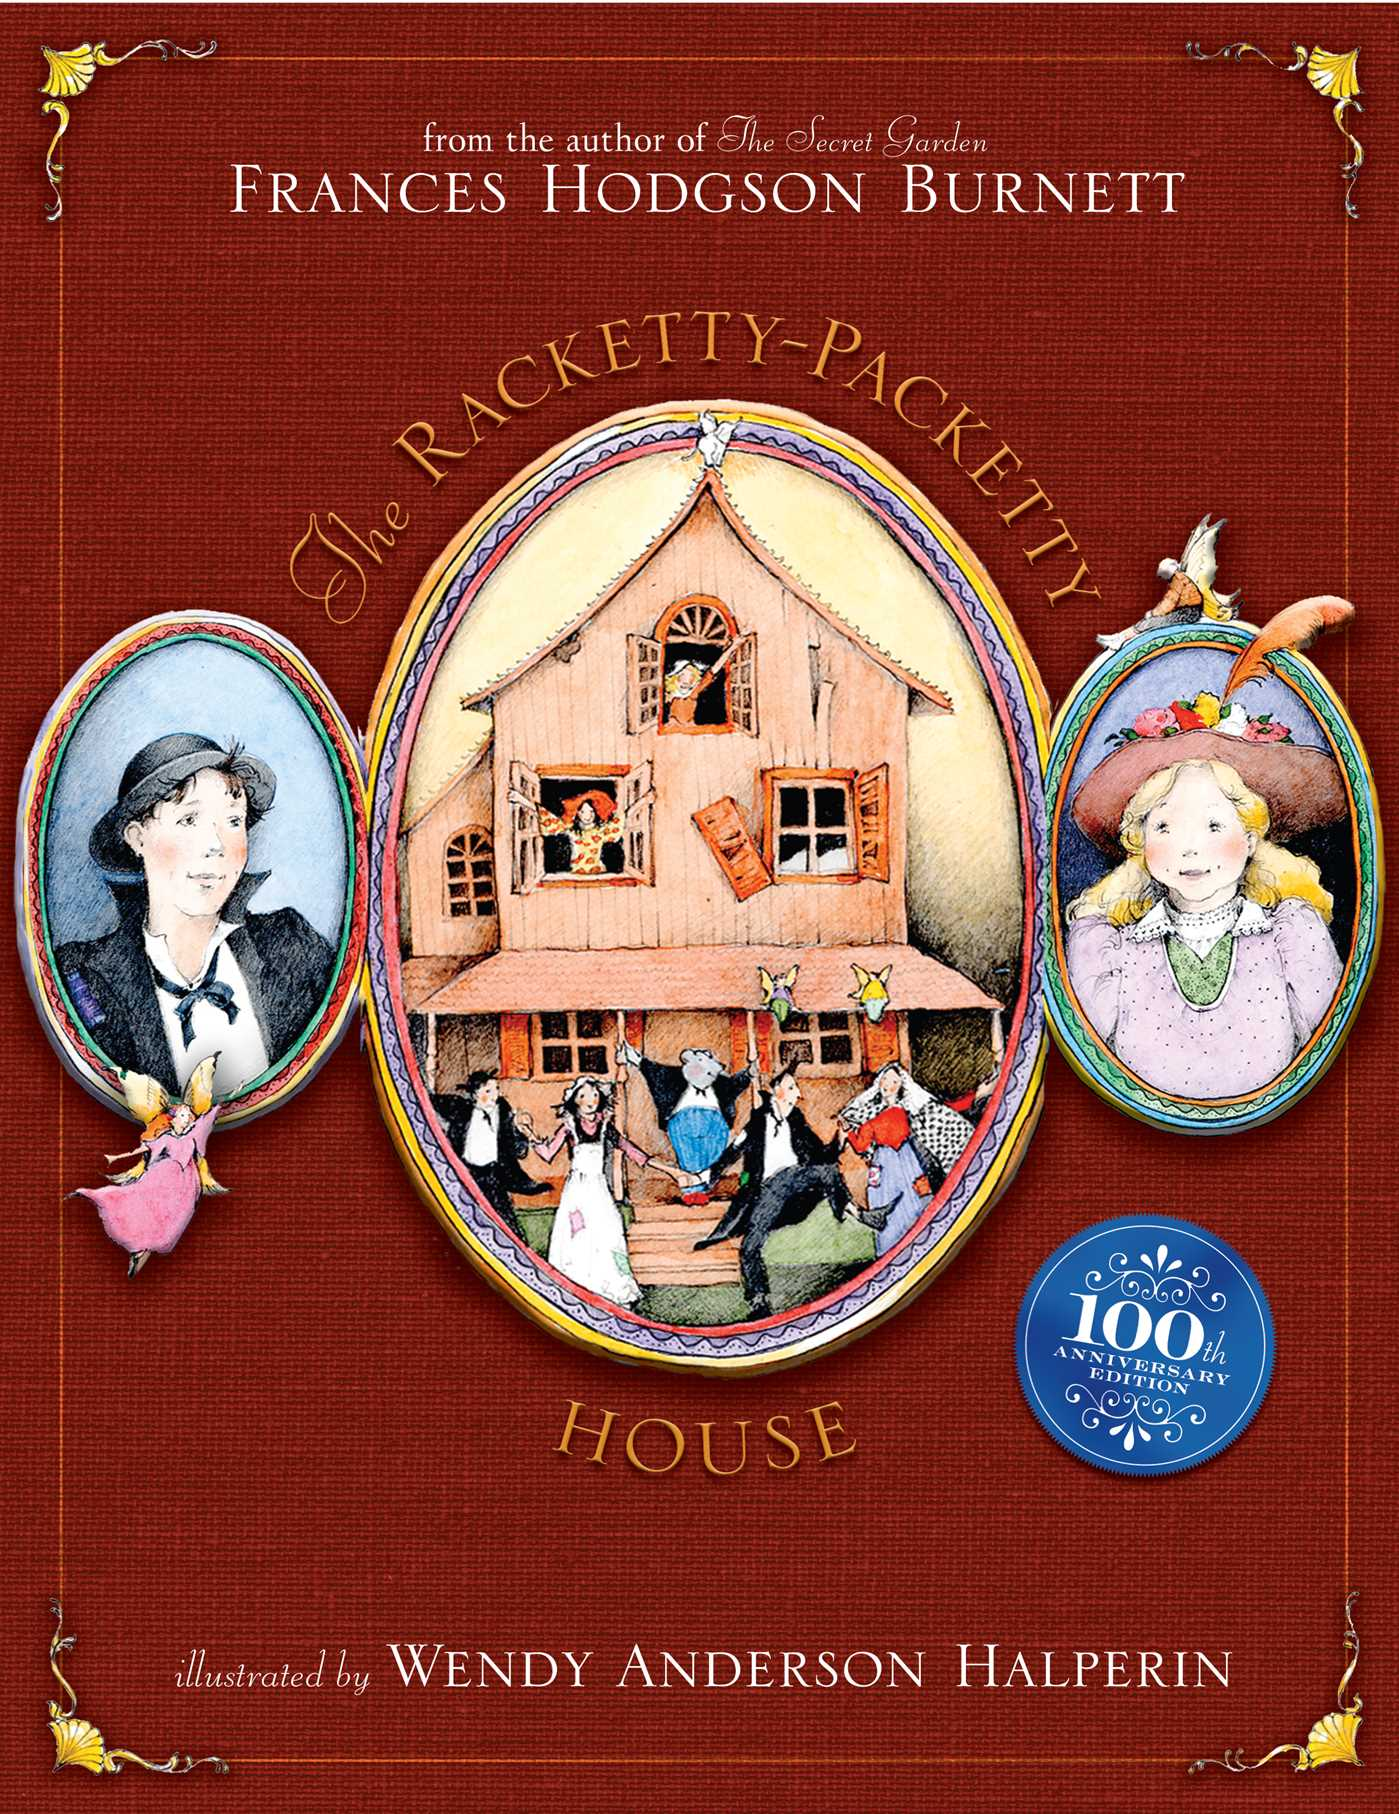 The racketty packetty house 9781442408470 hr